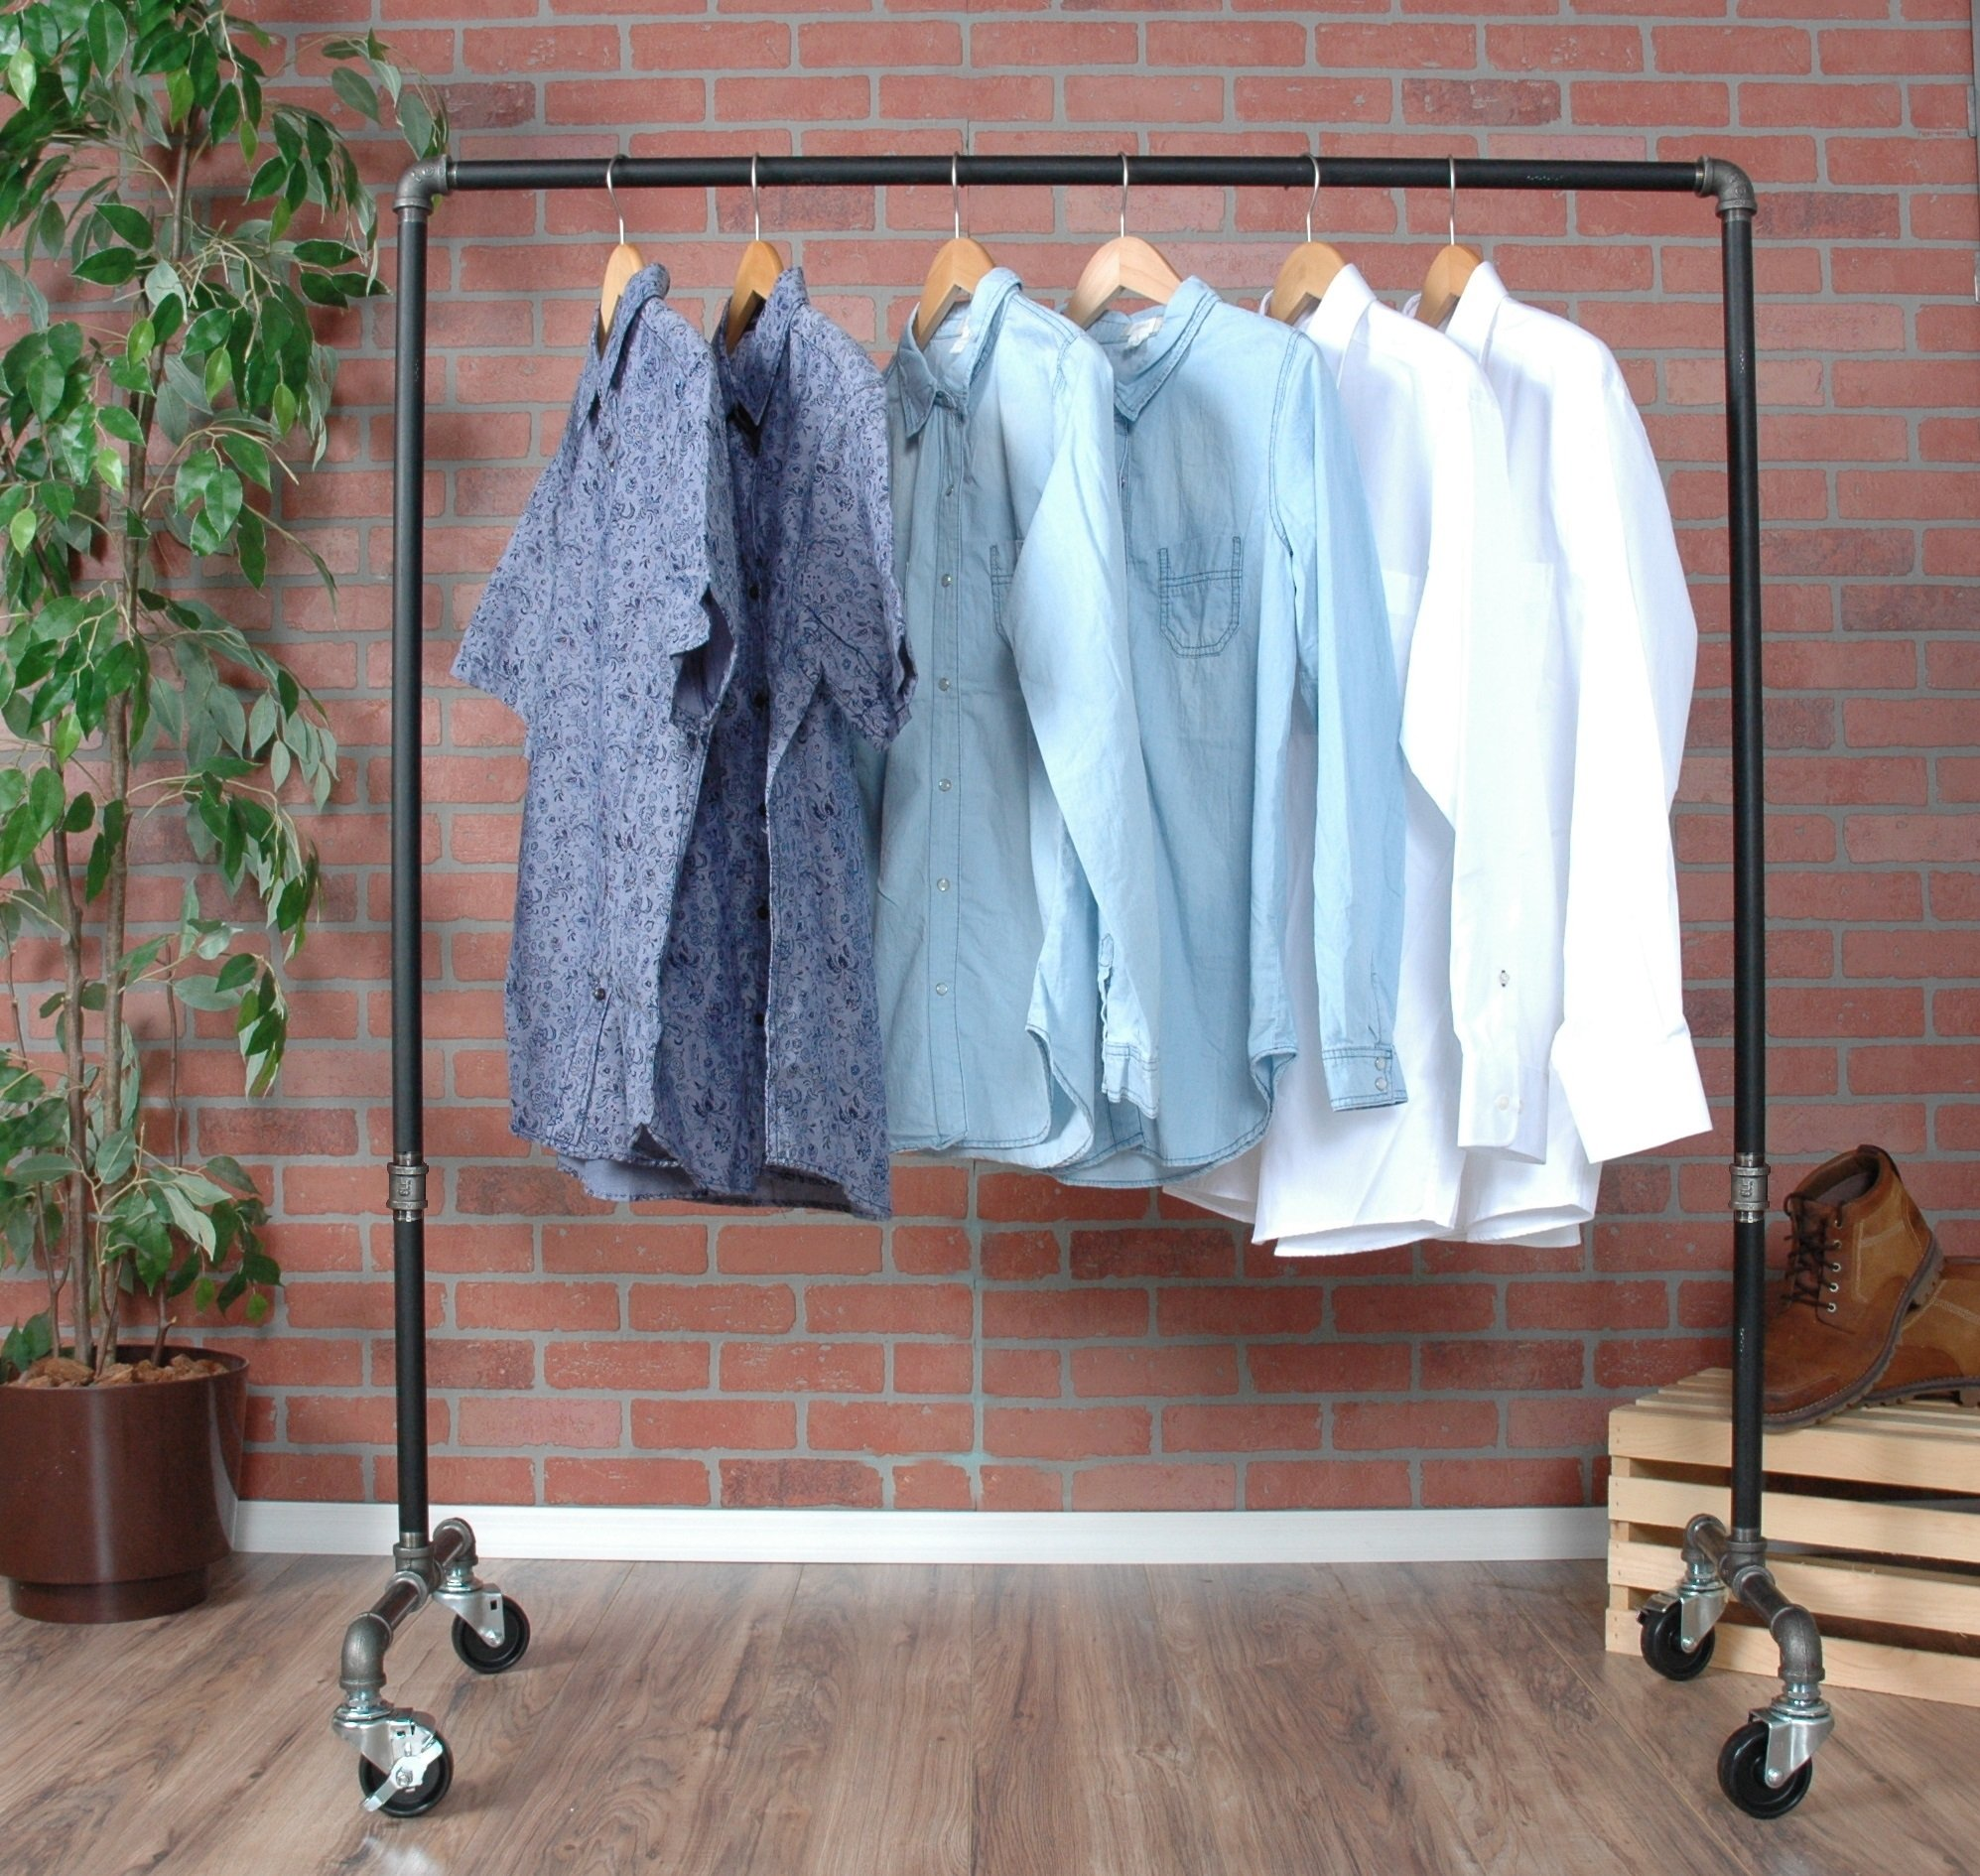 Industrial Pipe Rolling Clothing Rack by William Robert's